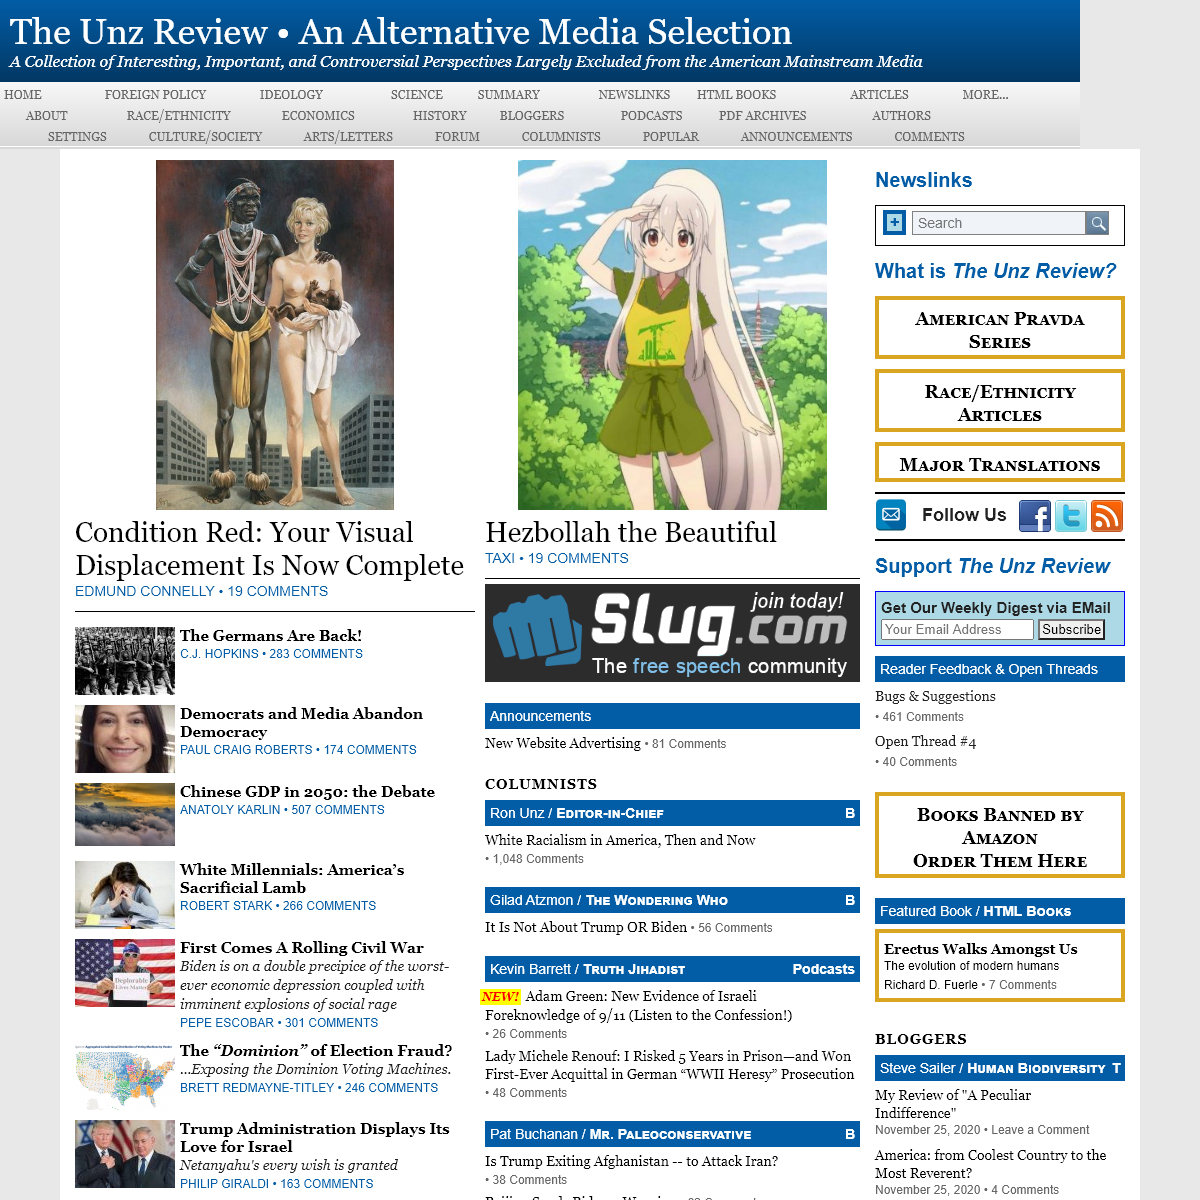 The Unz Review • An Alternative Media Selection - The Unz Review